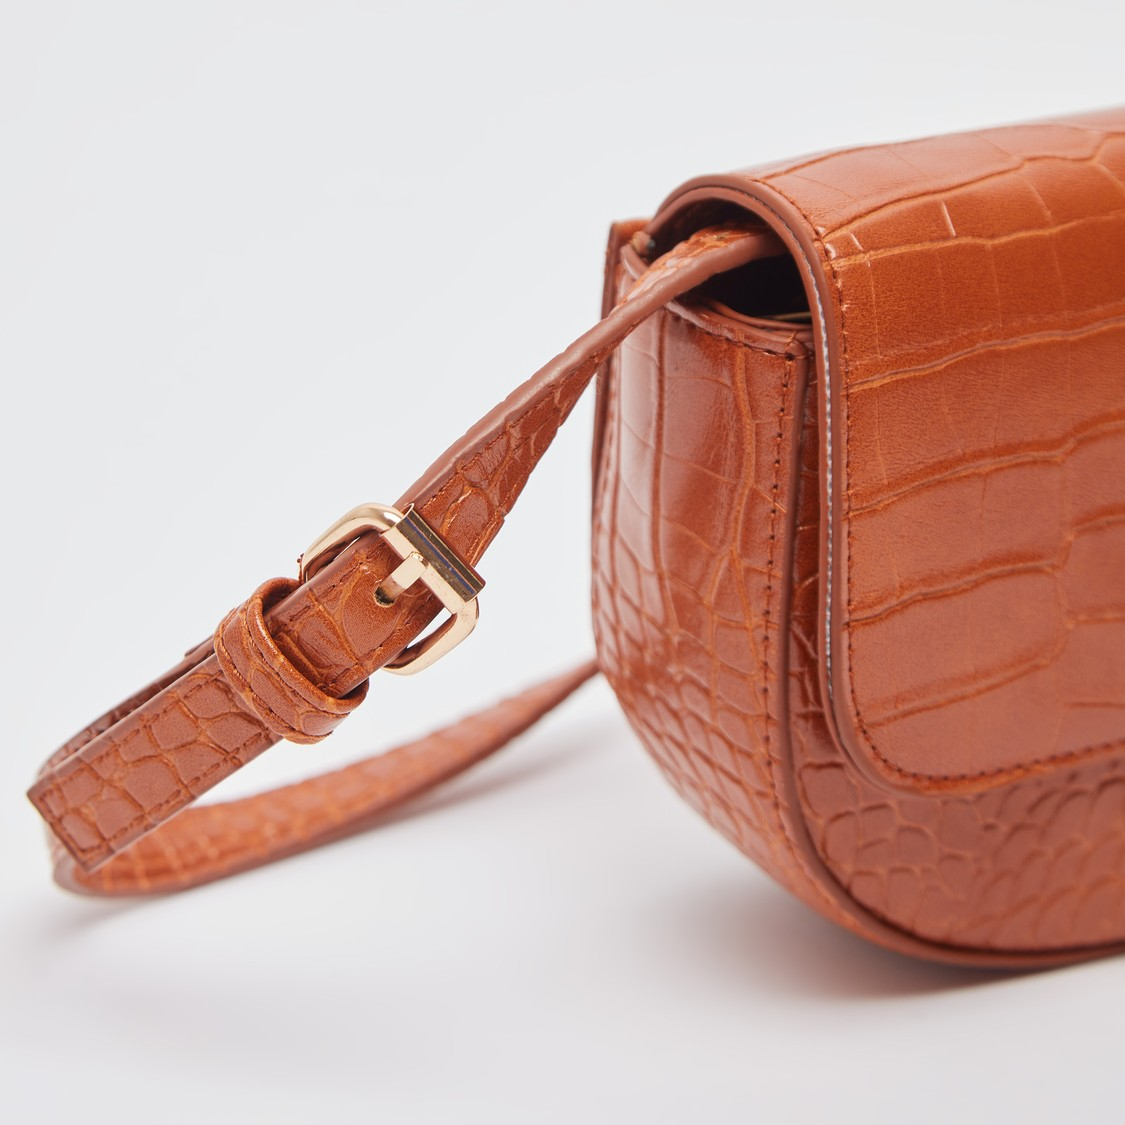 Reptilian Textured Crossbody Bag with Adjustable Sling Strap